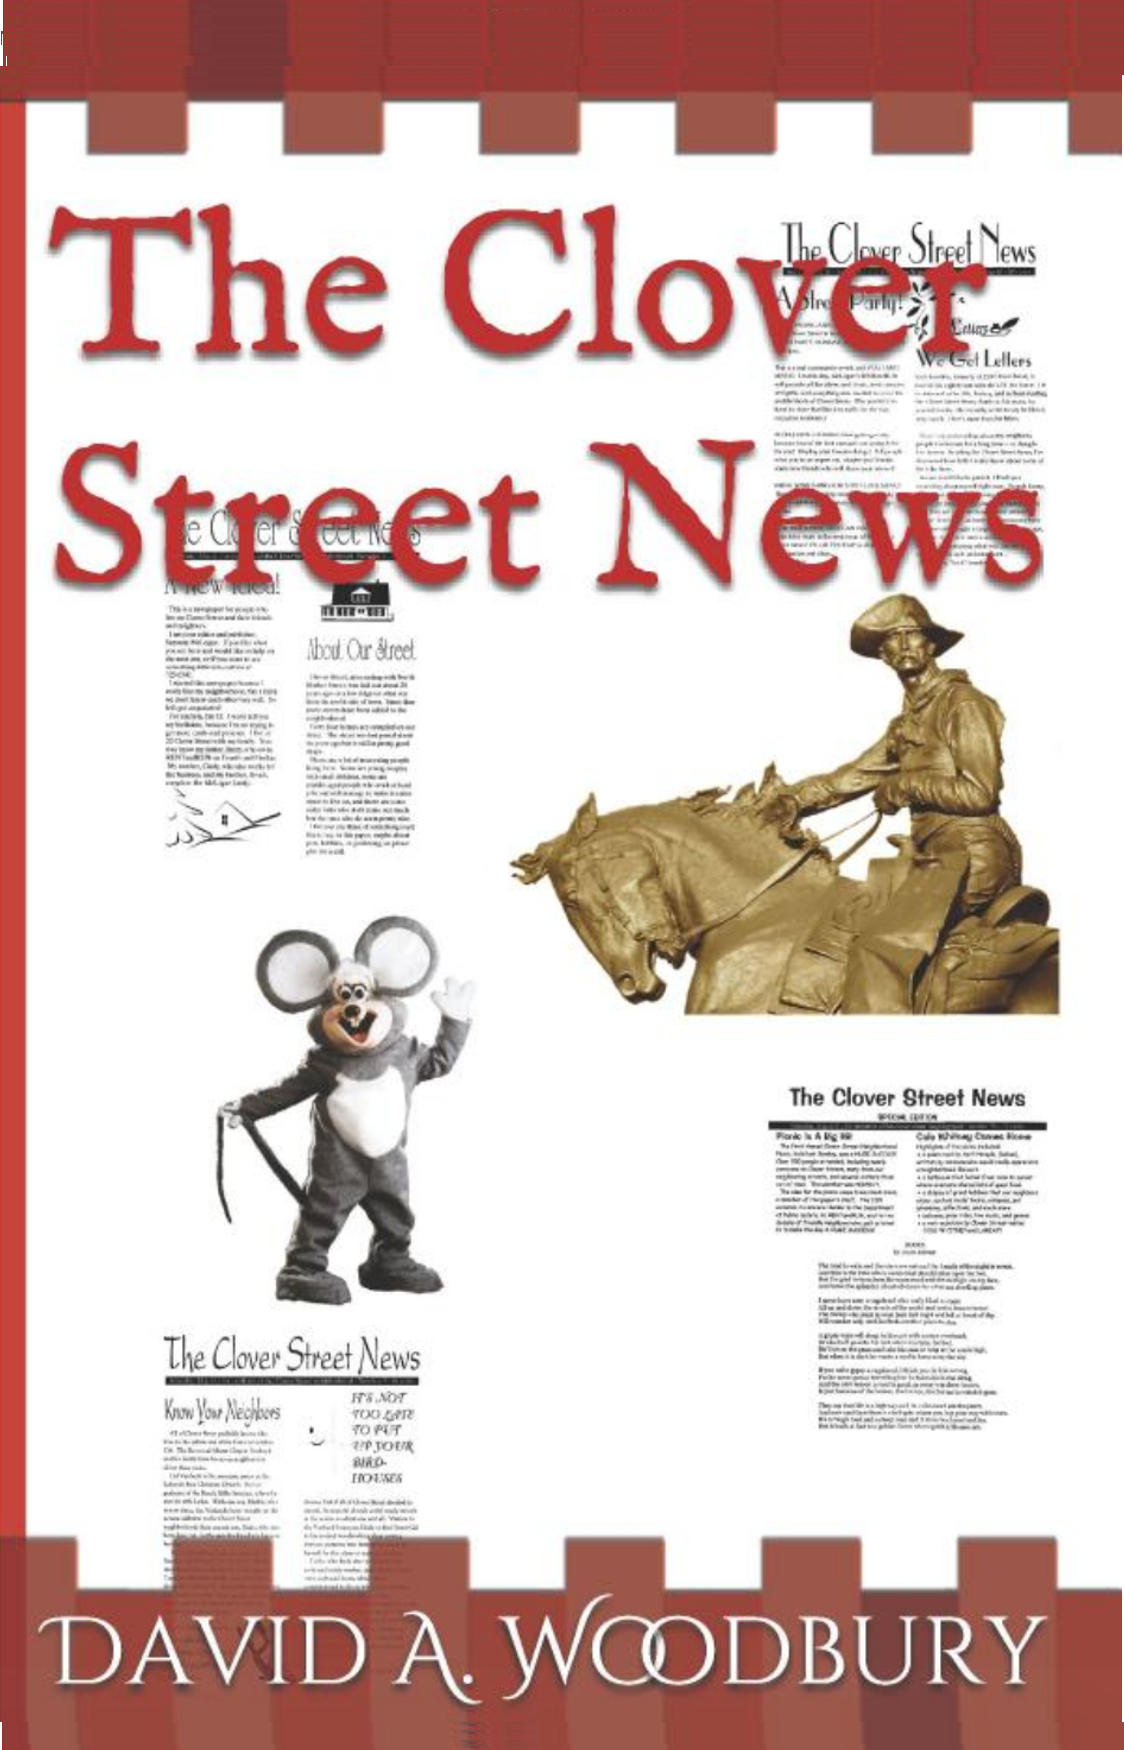 The Clover Street News